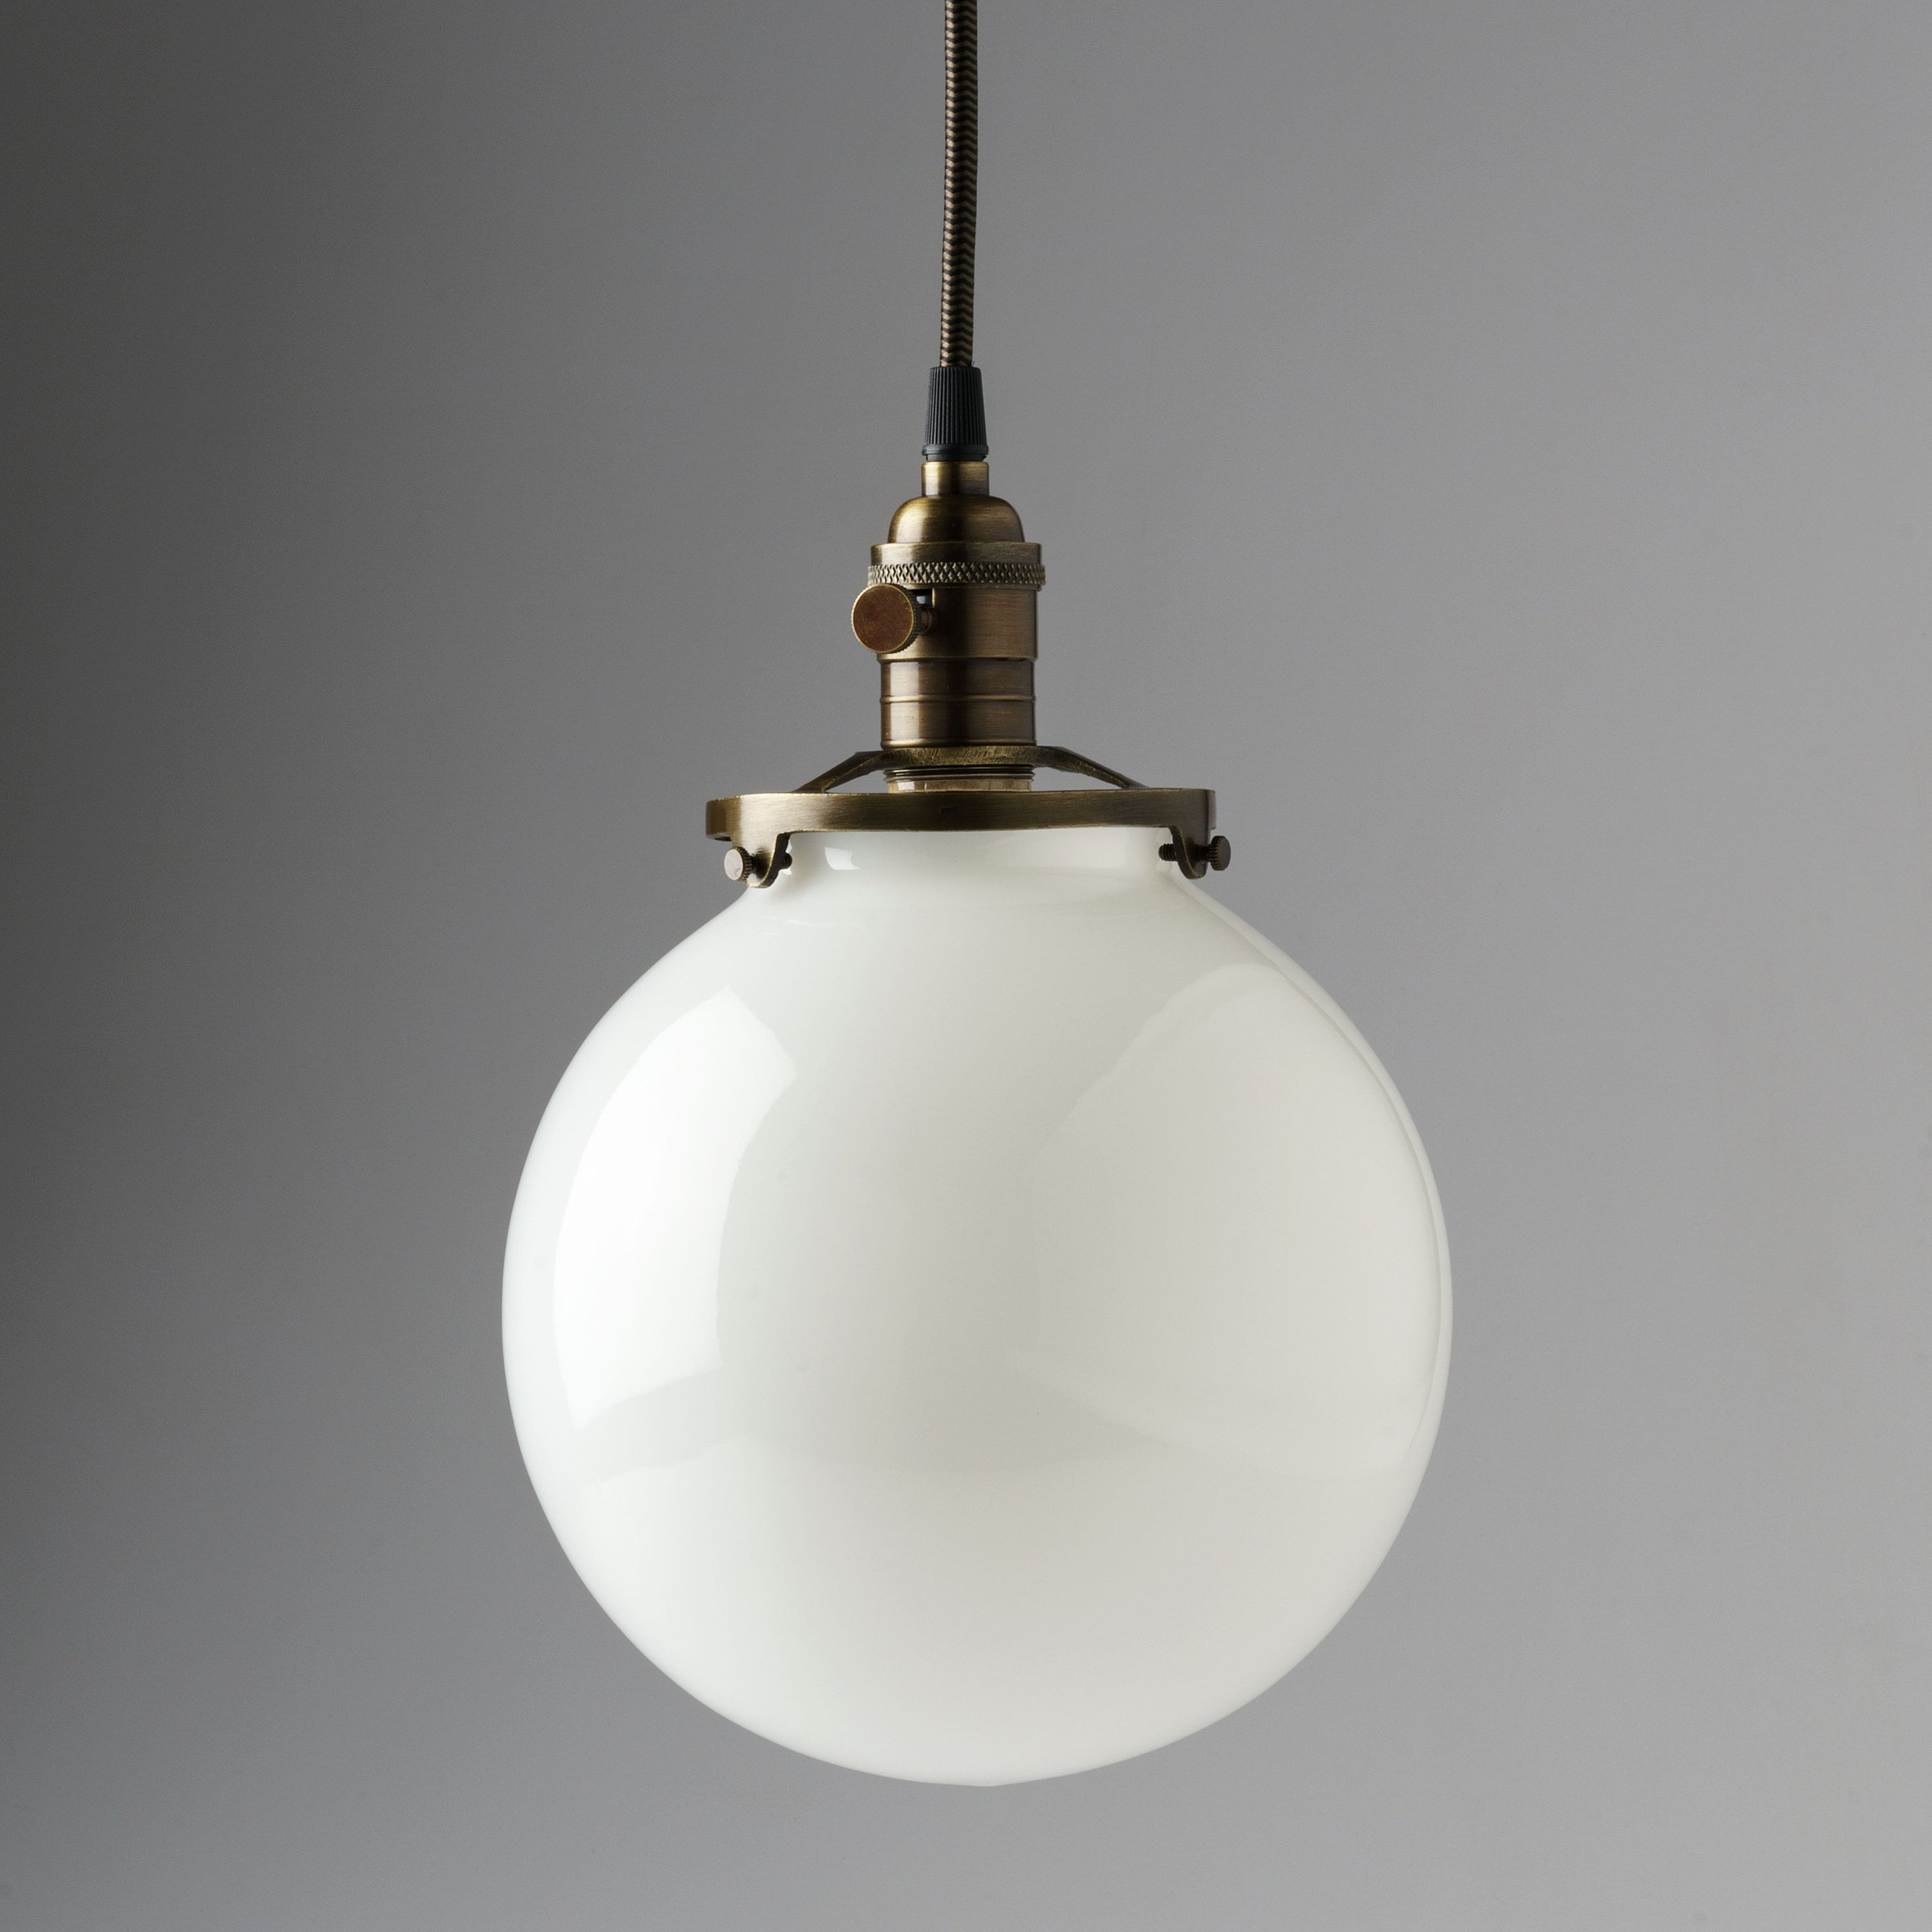 White glass globe pendant light fixture with